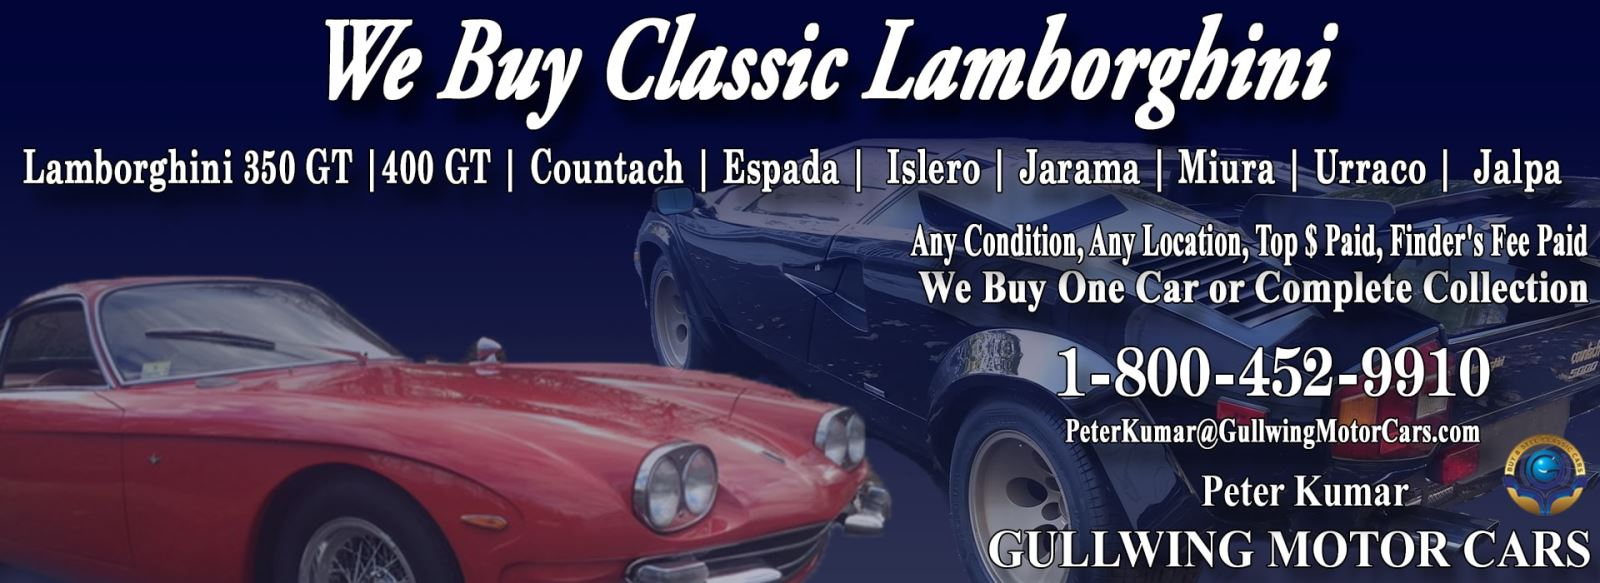 Classic Lamborghini Jalpa for sale, we buy vintage Lamborghini Jalpa. Call Peter Kumar. Gullwing Motor